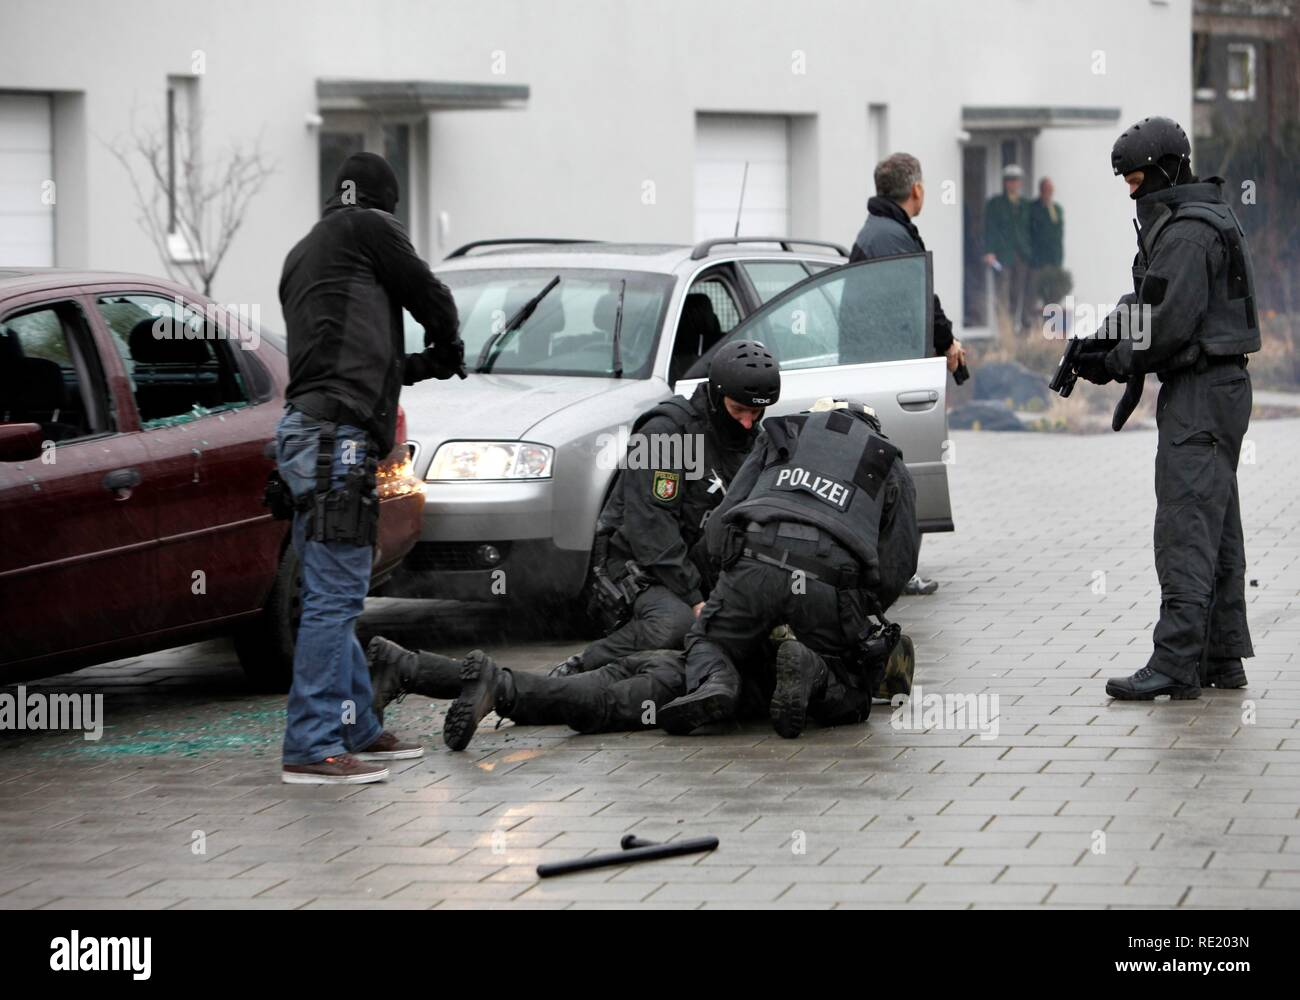 Police special task forces, SEC, during a practical rehearsal, capturing 2 perpetrators in a car, Duesseldorf Stock Photo